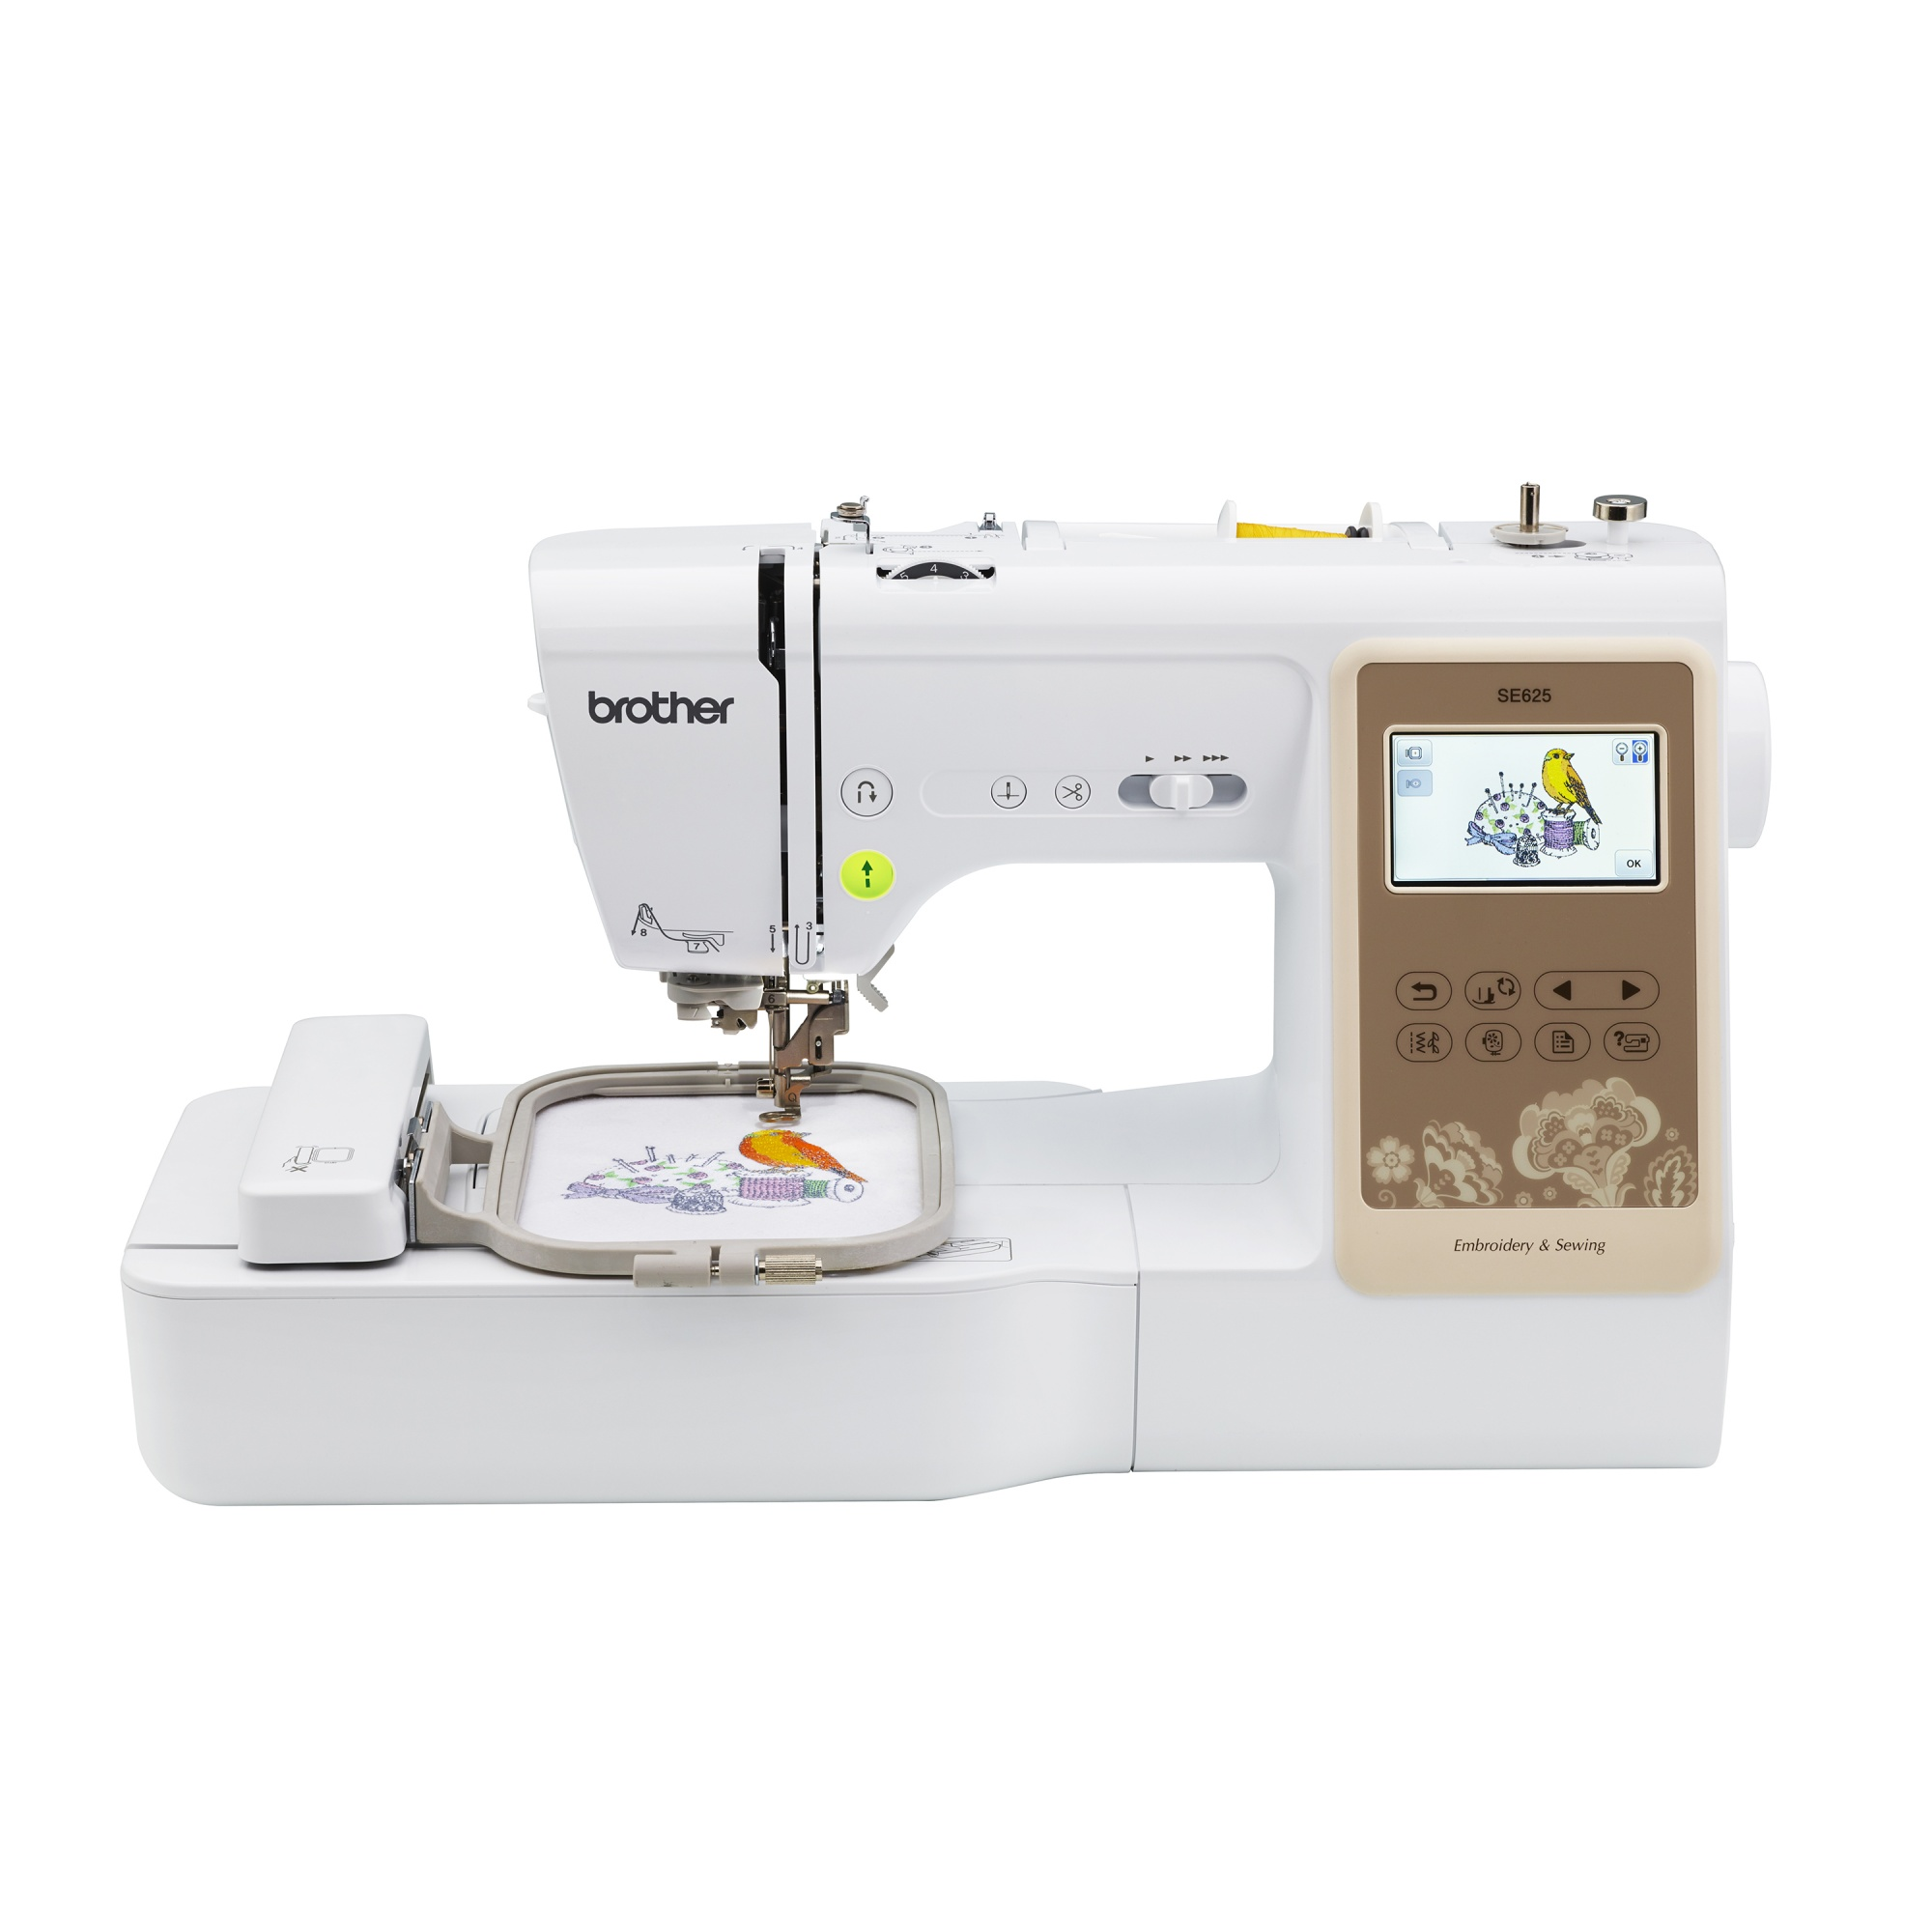 Cheap Sewing Machines Australia Brother Se625 Combination Computerised Sewing And 4x4 Embroidery Machine With Colour Lcd Display 280 Total Embroidery Designs